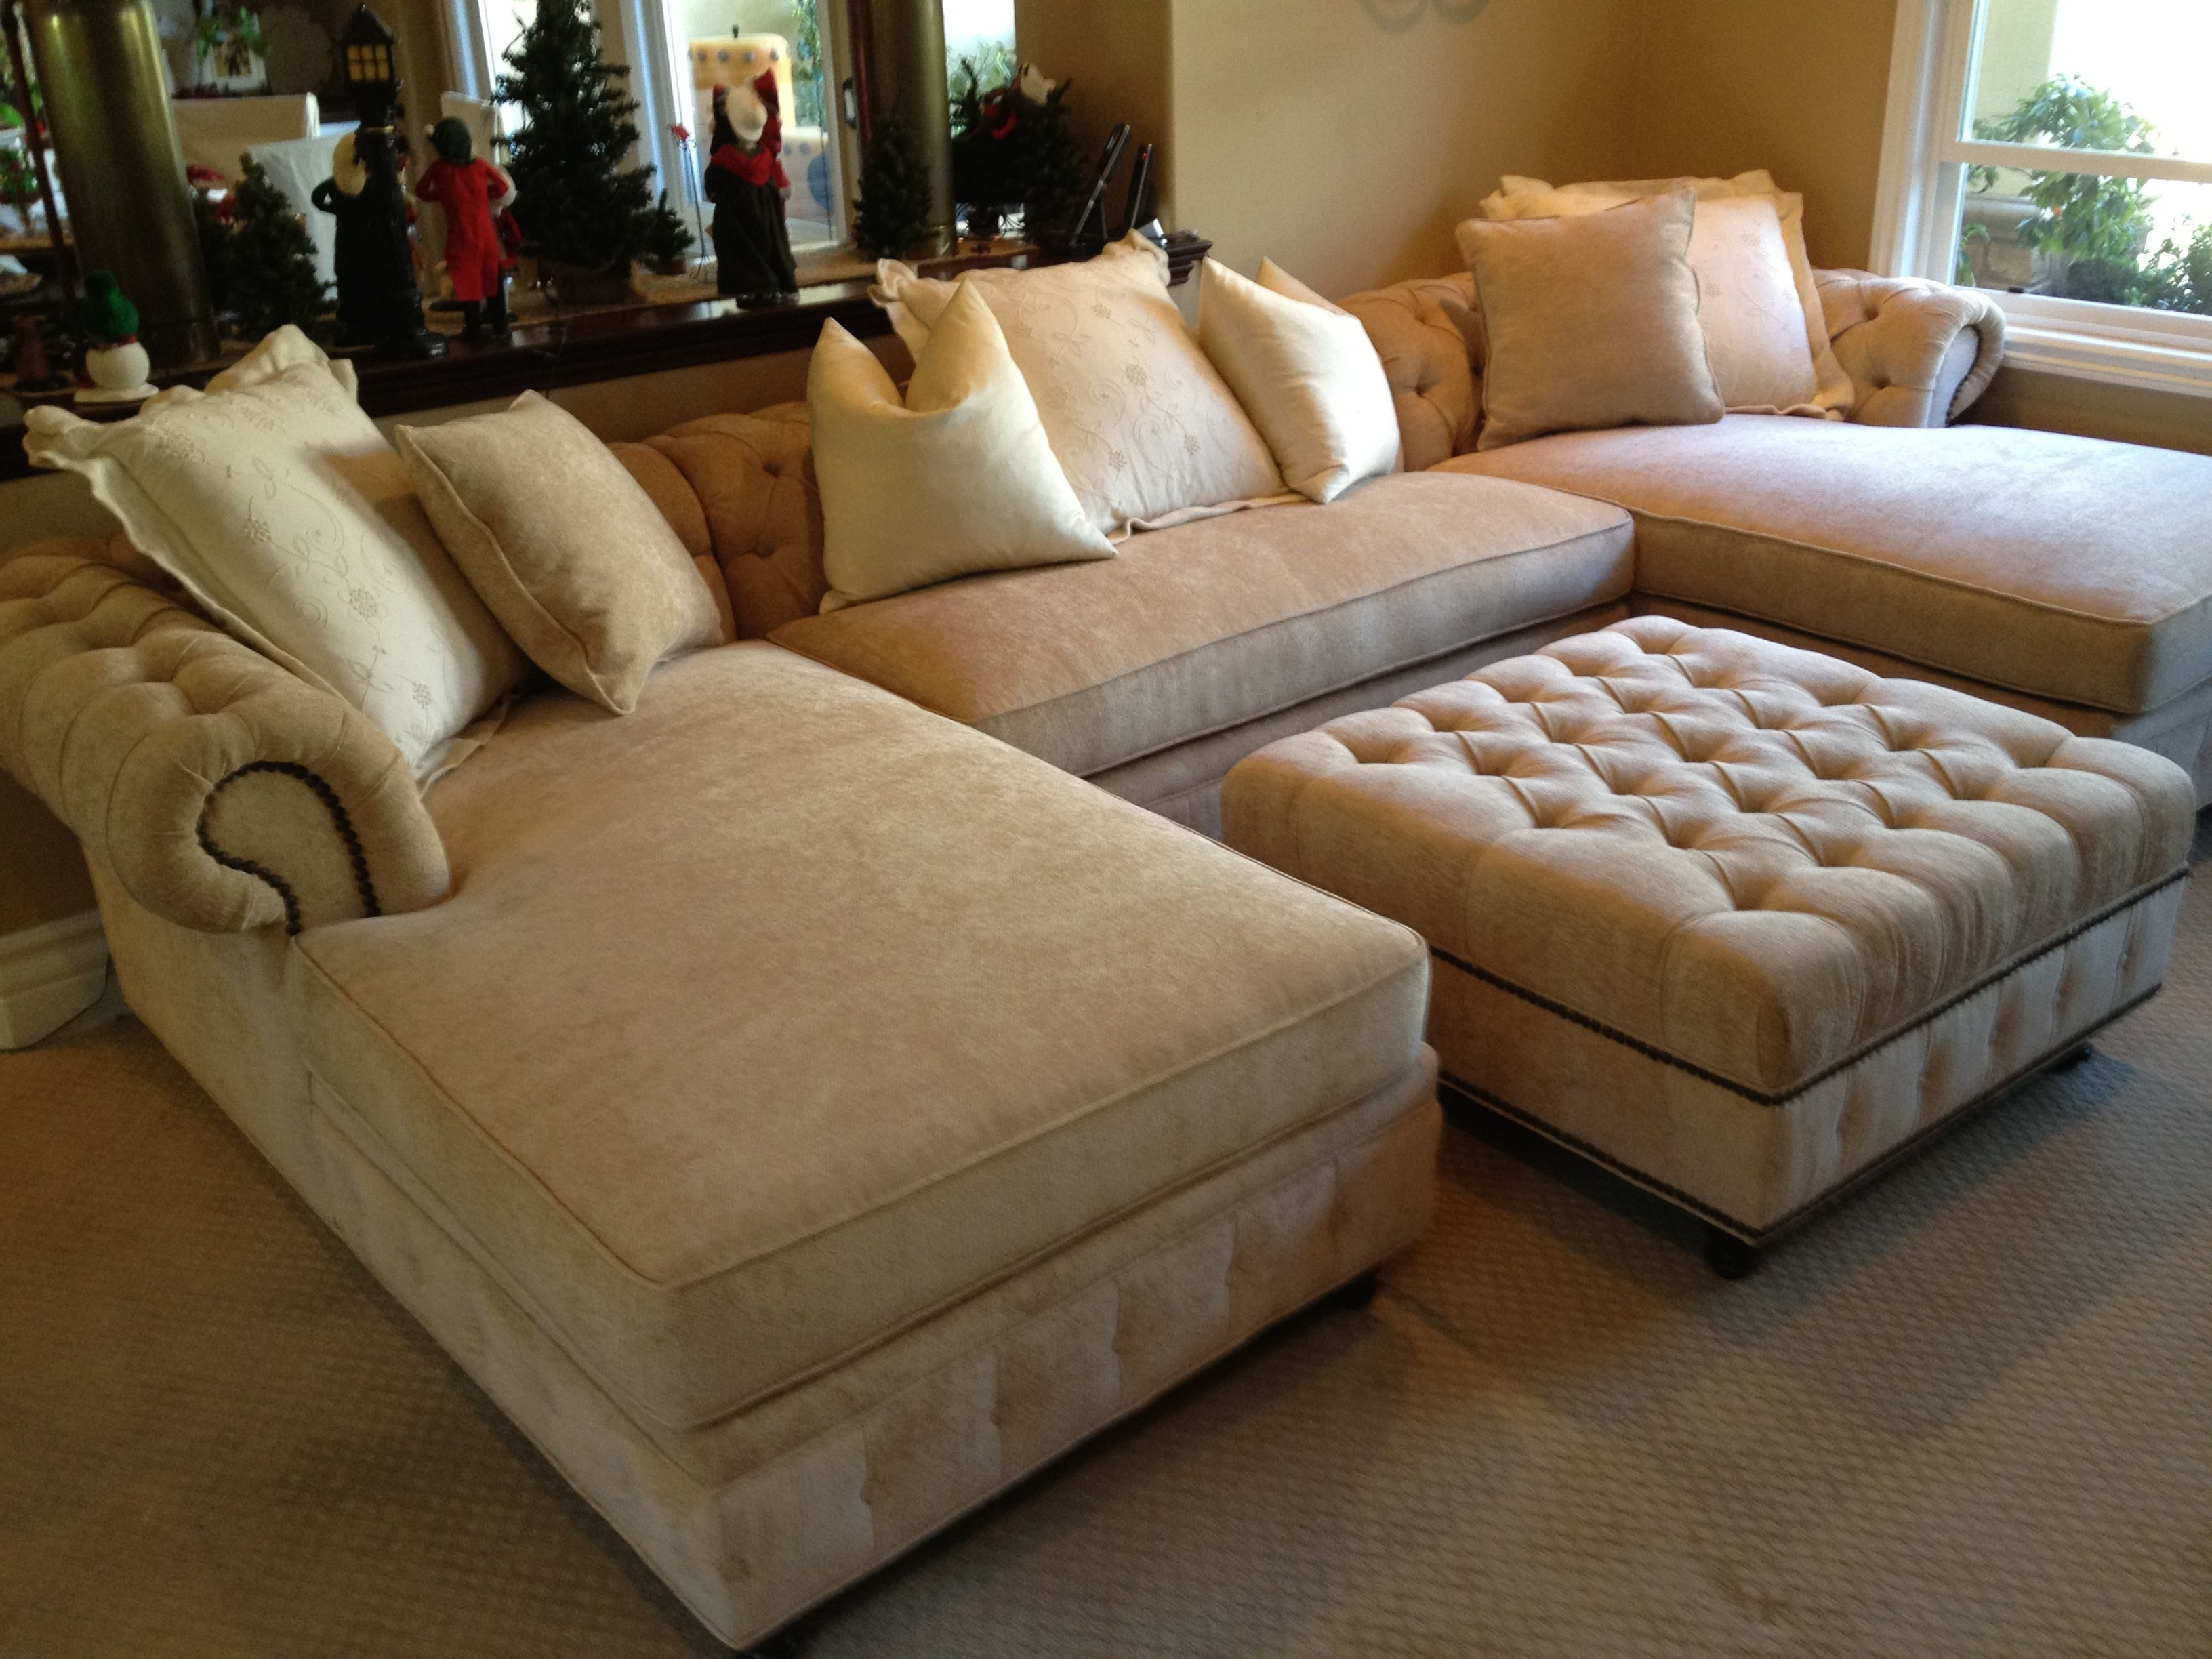 Deep Sectional Sofas With Chaise With Recent Sofa Design Ideas: Deep Sectional Sofa With Chaise Deep Sectional (View 4 of 15)